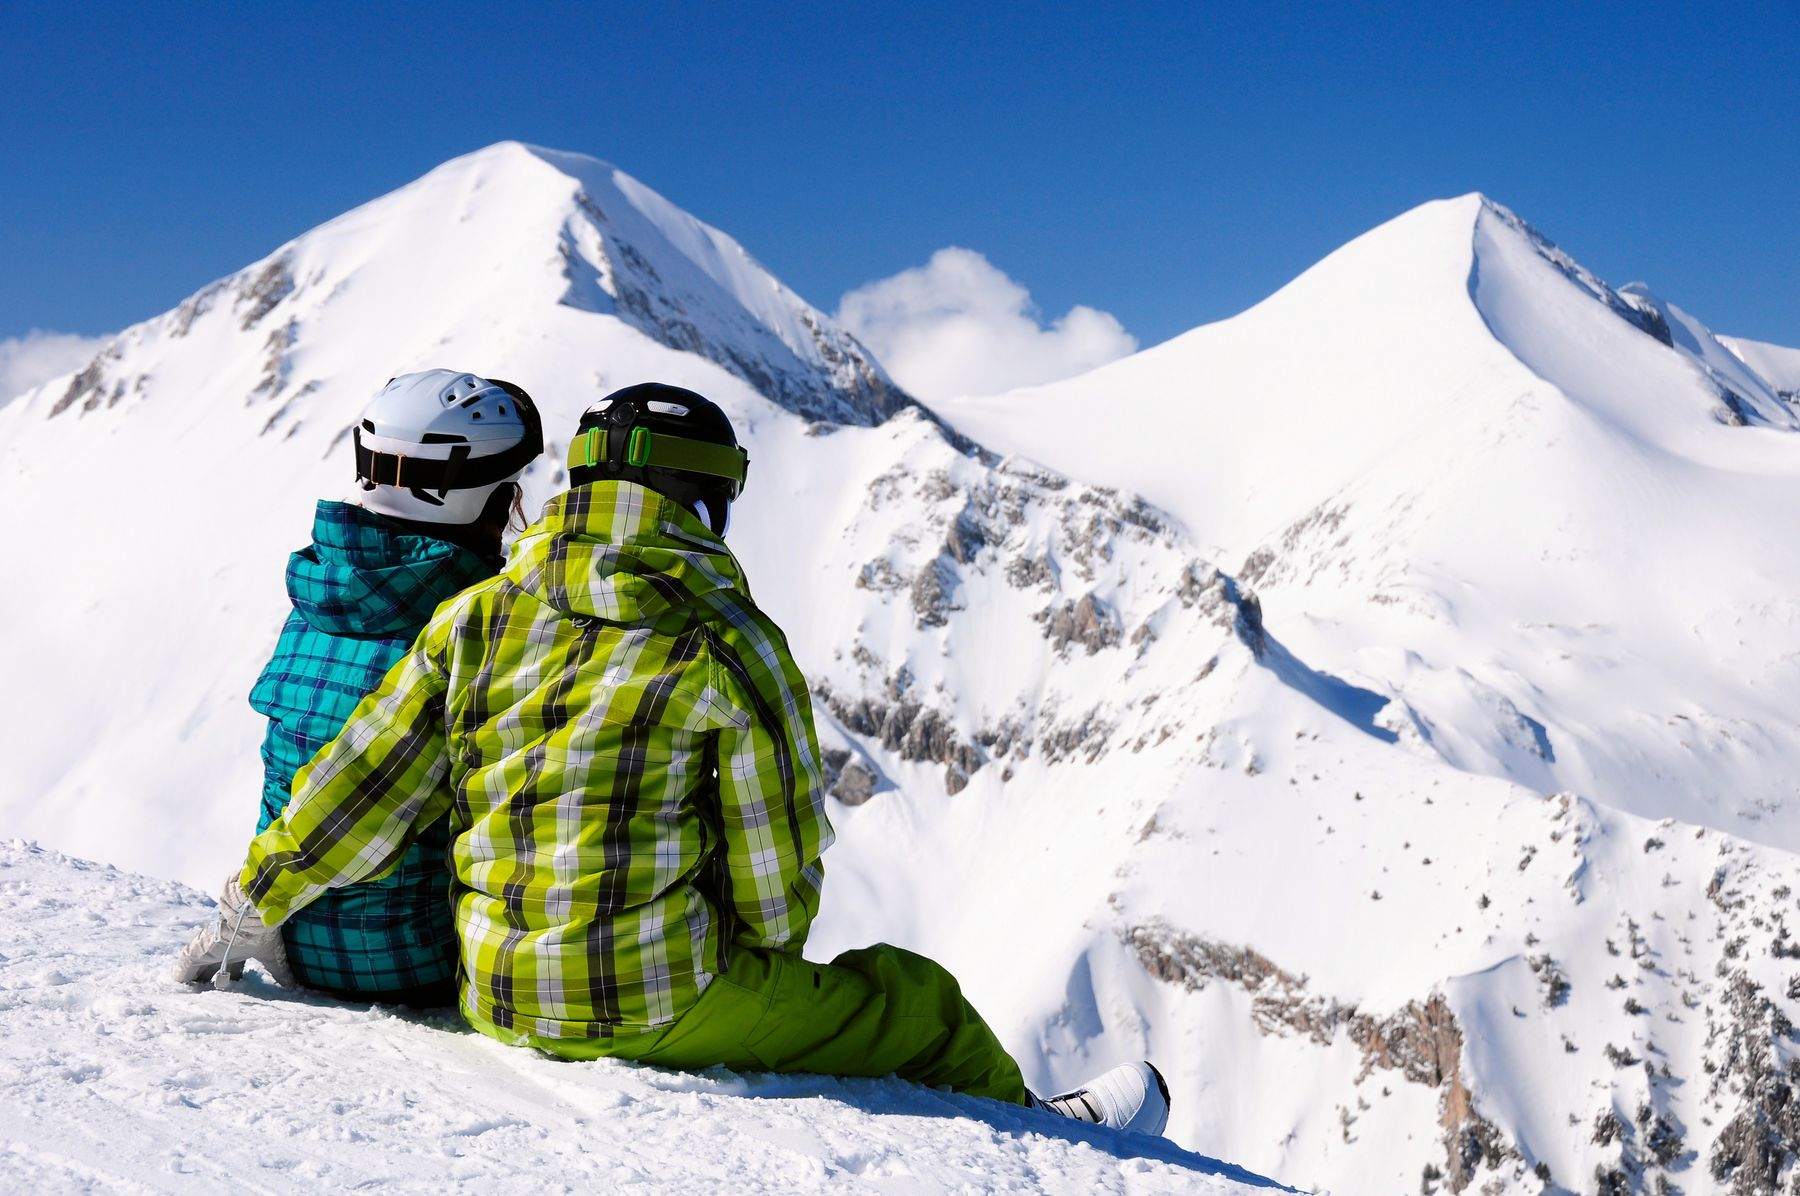 Two skiiers sit with their back to the camera looking at the mountains of Bansko, Bulgaria